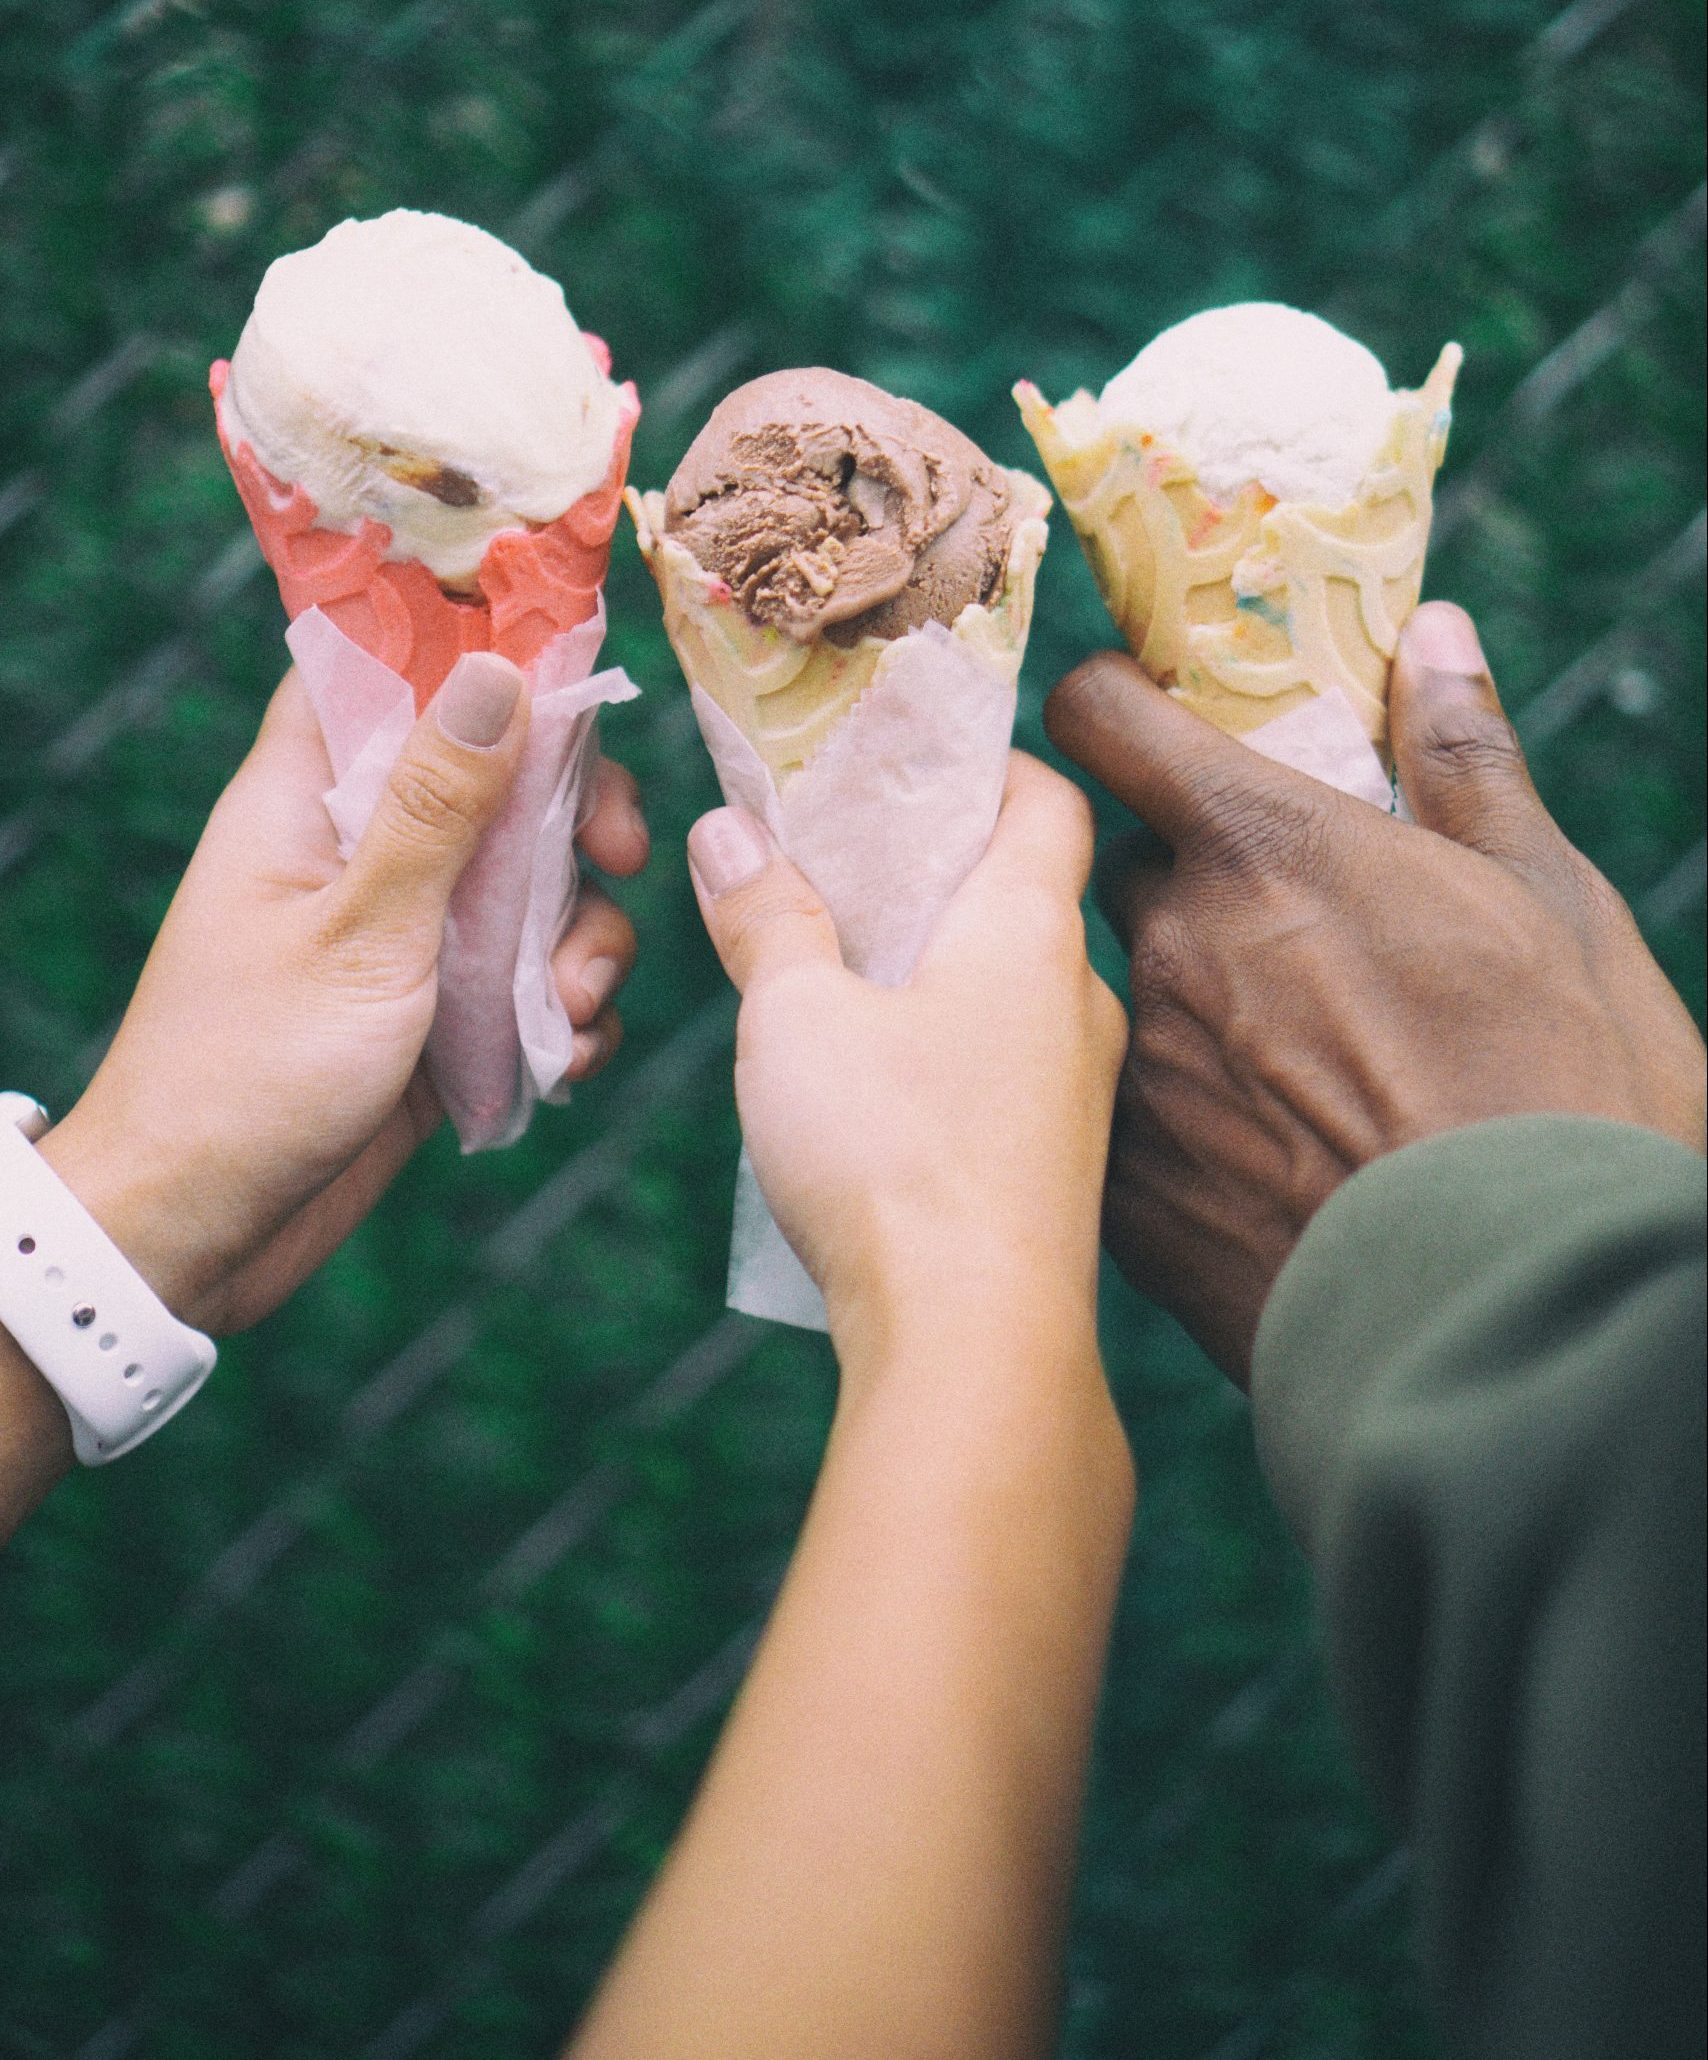 The hands of 3 friends, each holding an ice cream cone.